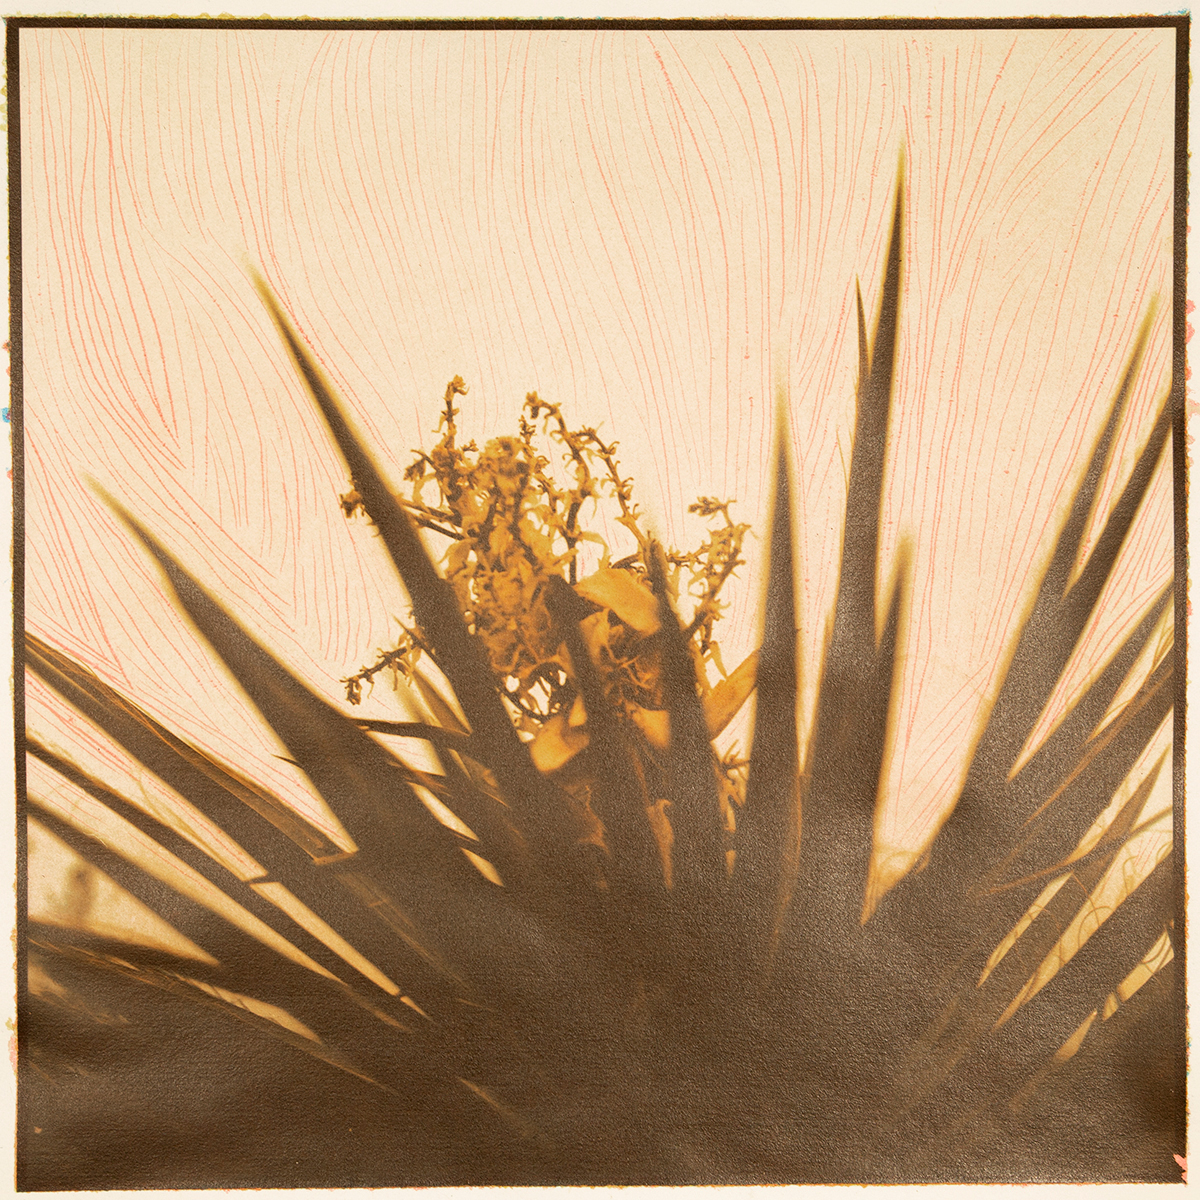 Yucca in Transition